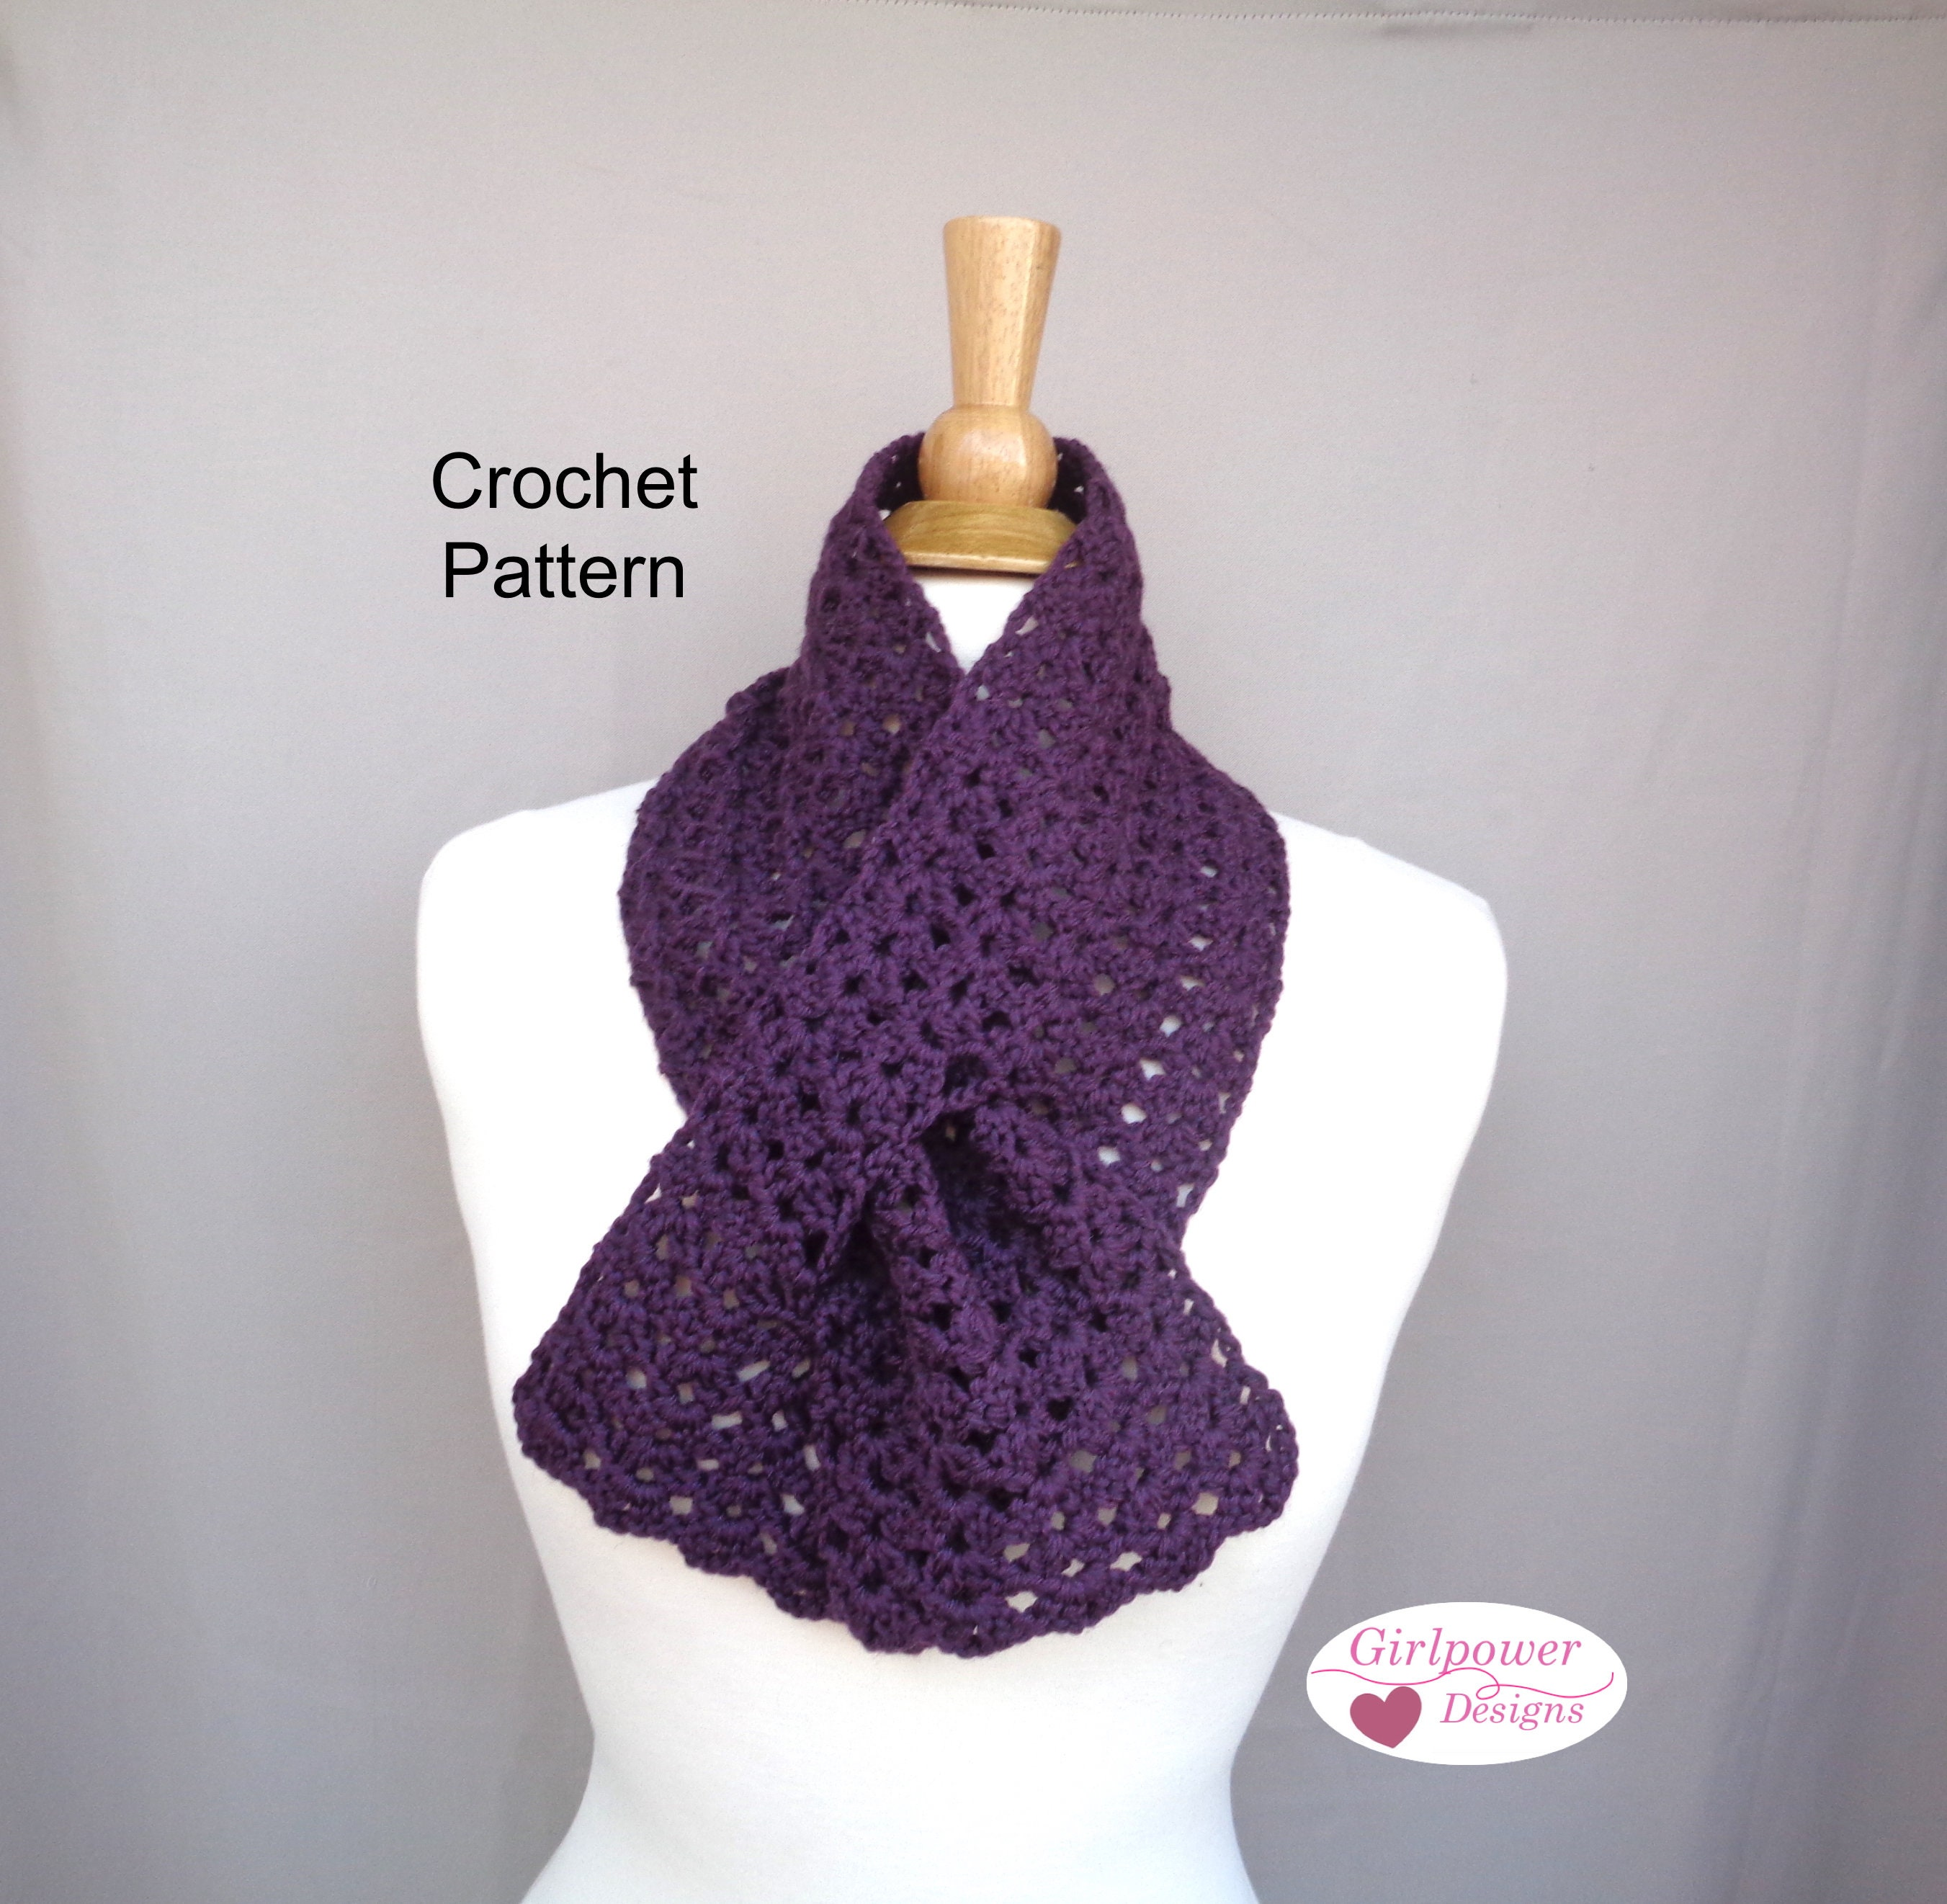 Easy Crochet Pattern Keyhole Scarf Worsted Yarn Lacy Etsy